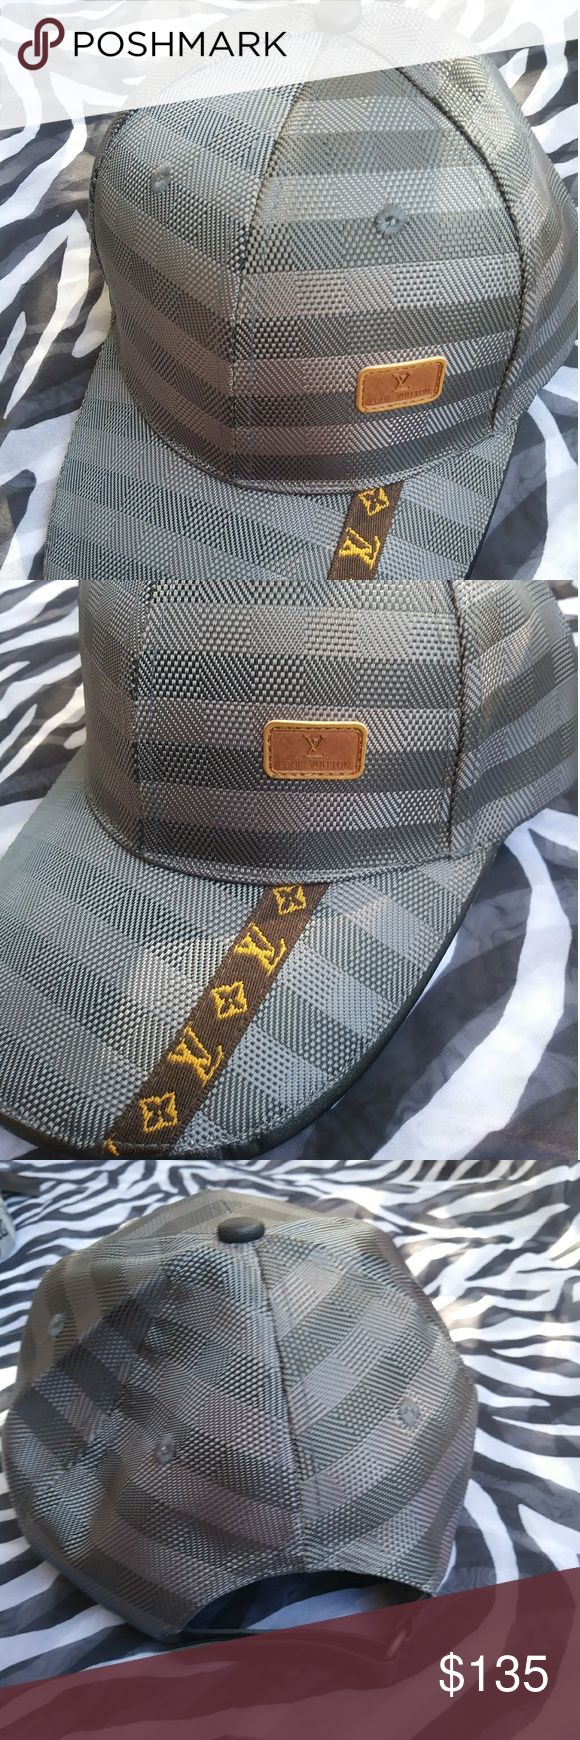 LOUIS VUITTON BASEBALL cap unisex New with tag no/ with adjustable Louis vuitton hat unisex Louis Vuitton Accessories Hats